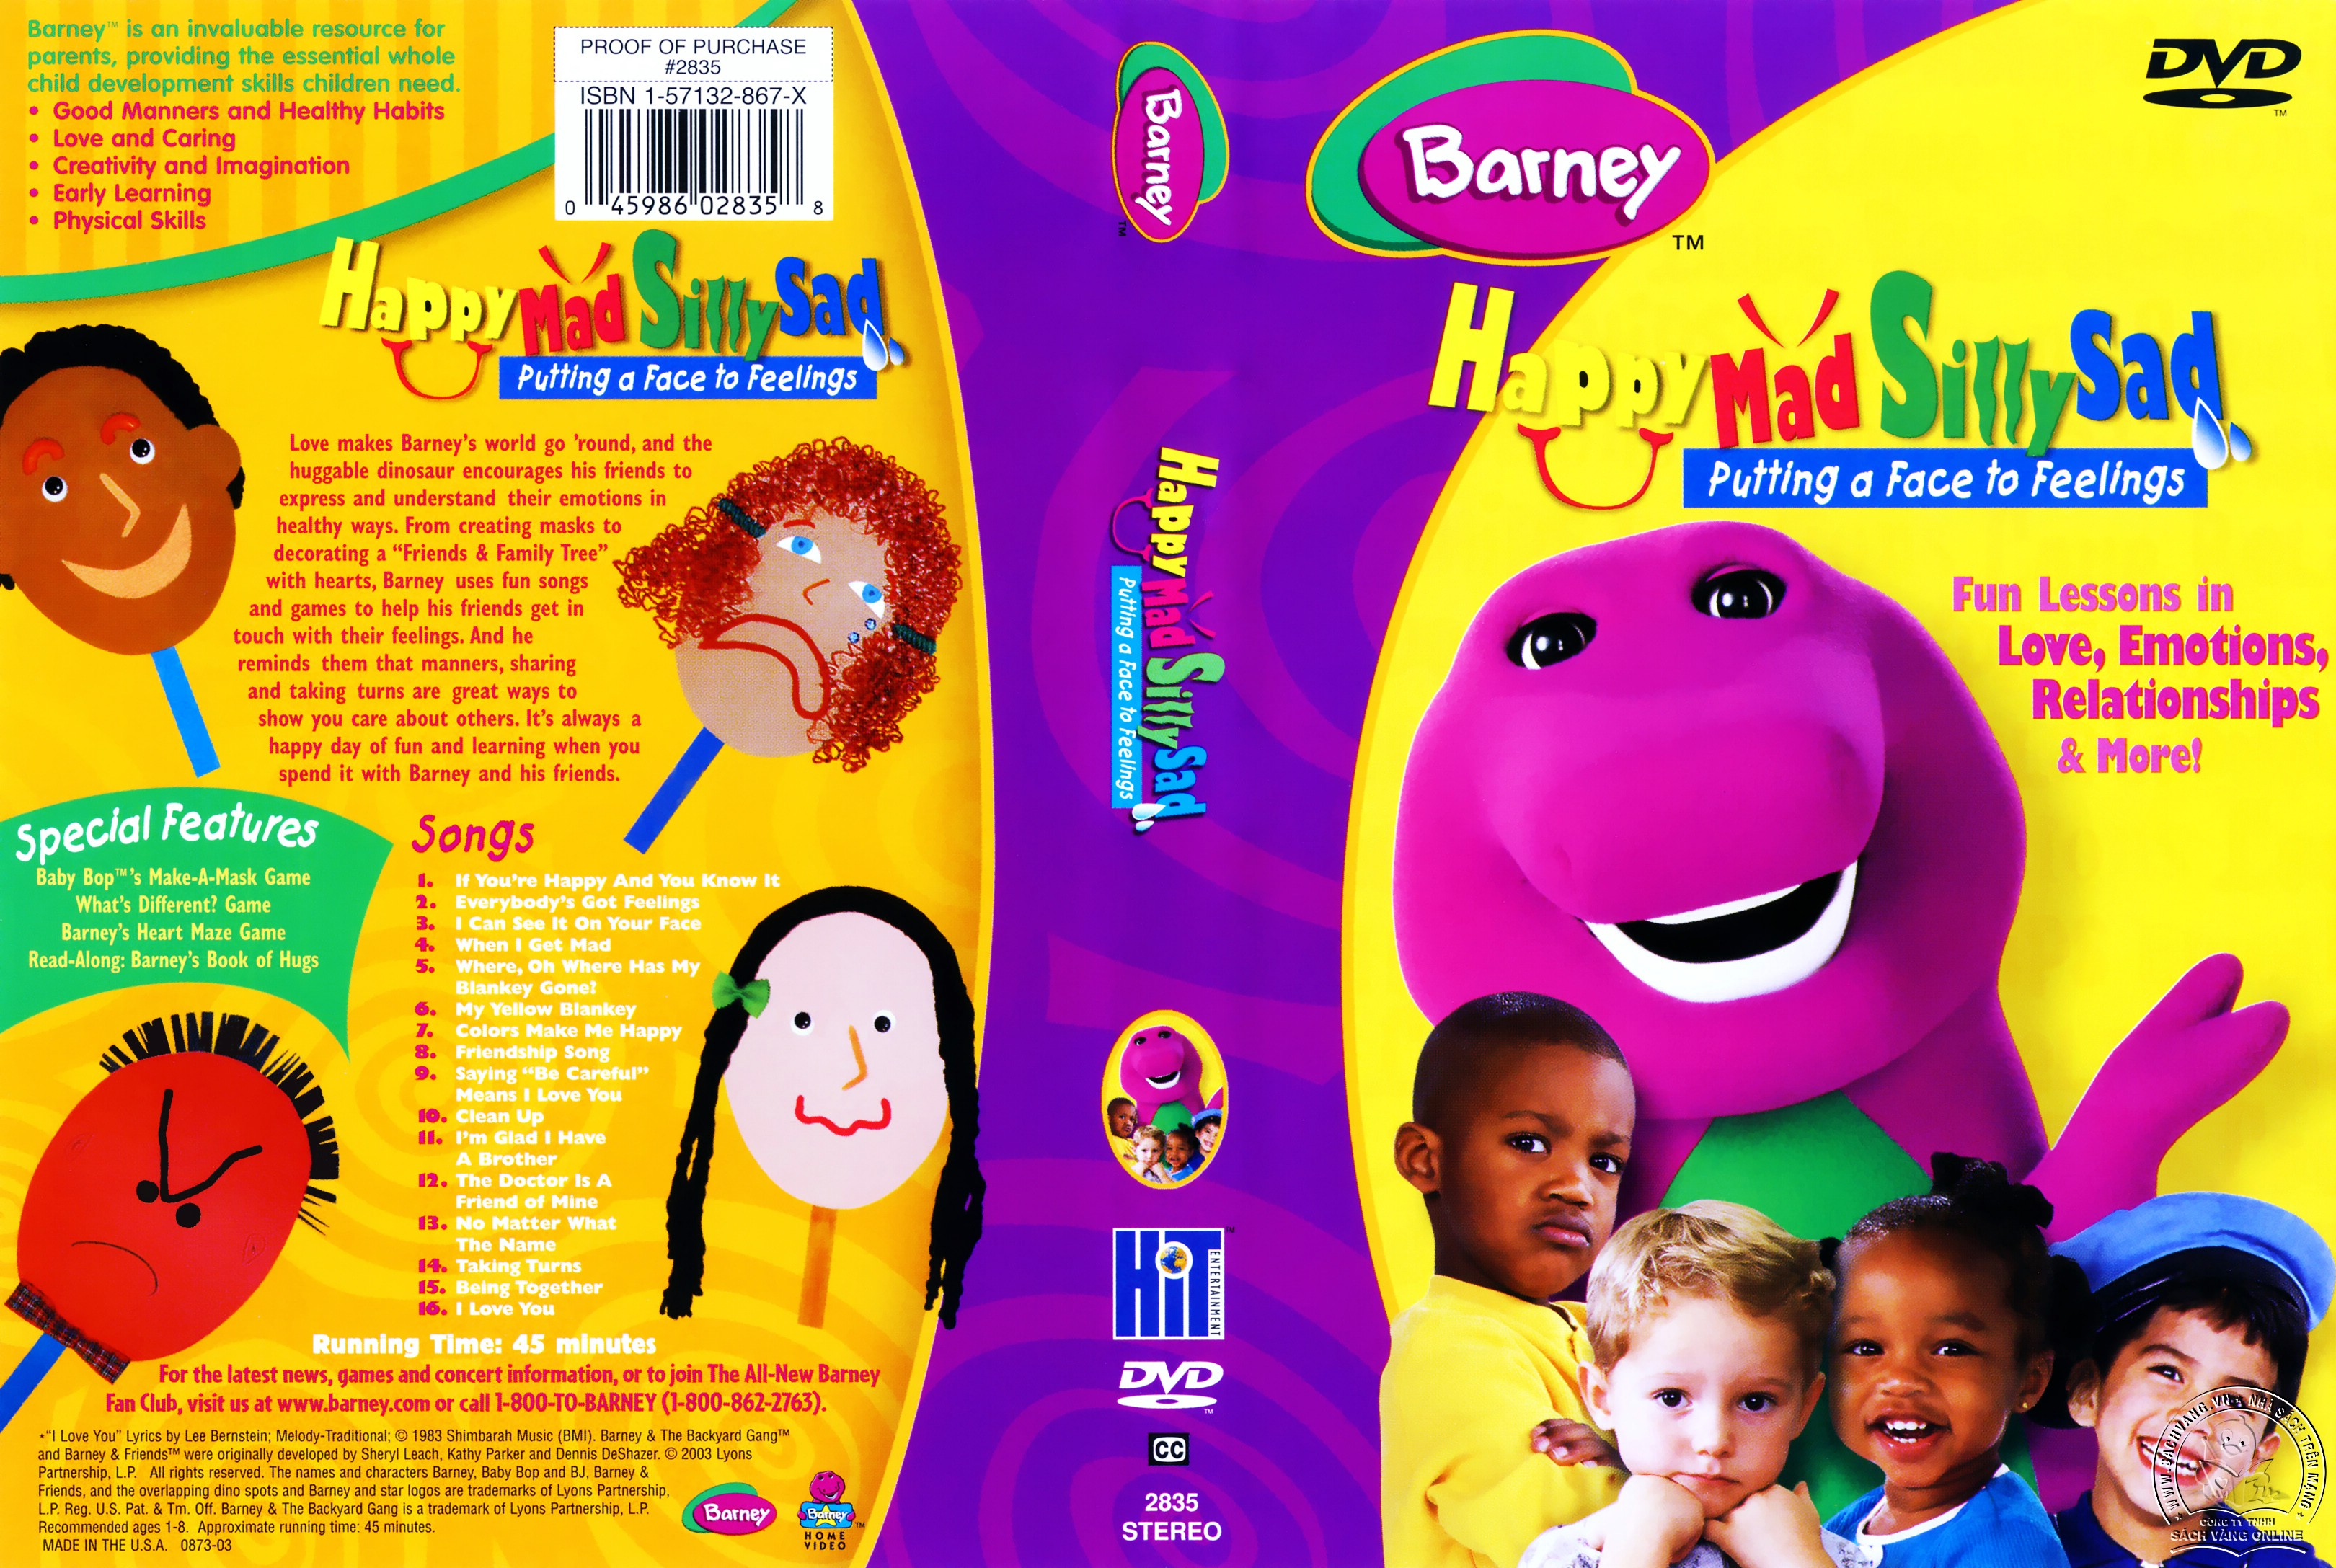 03-Barney Happy Sad Silly Mad - Cover